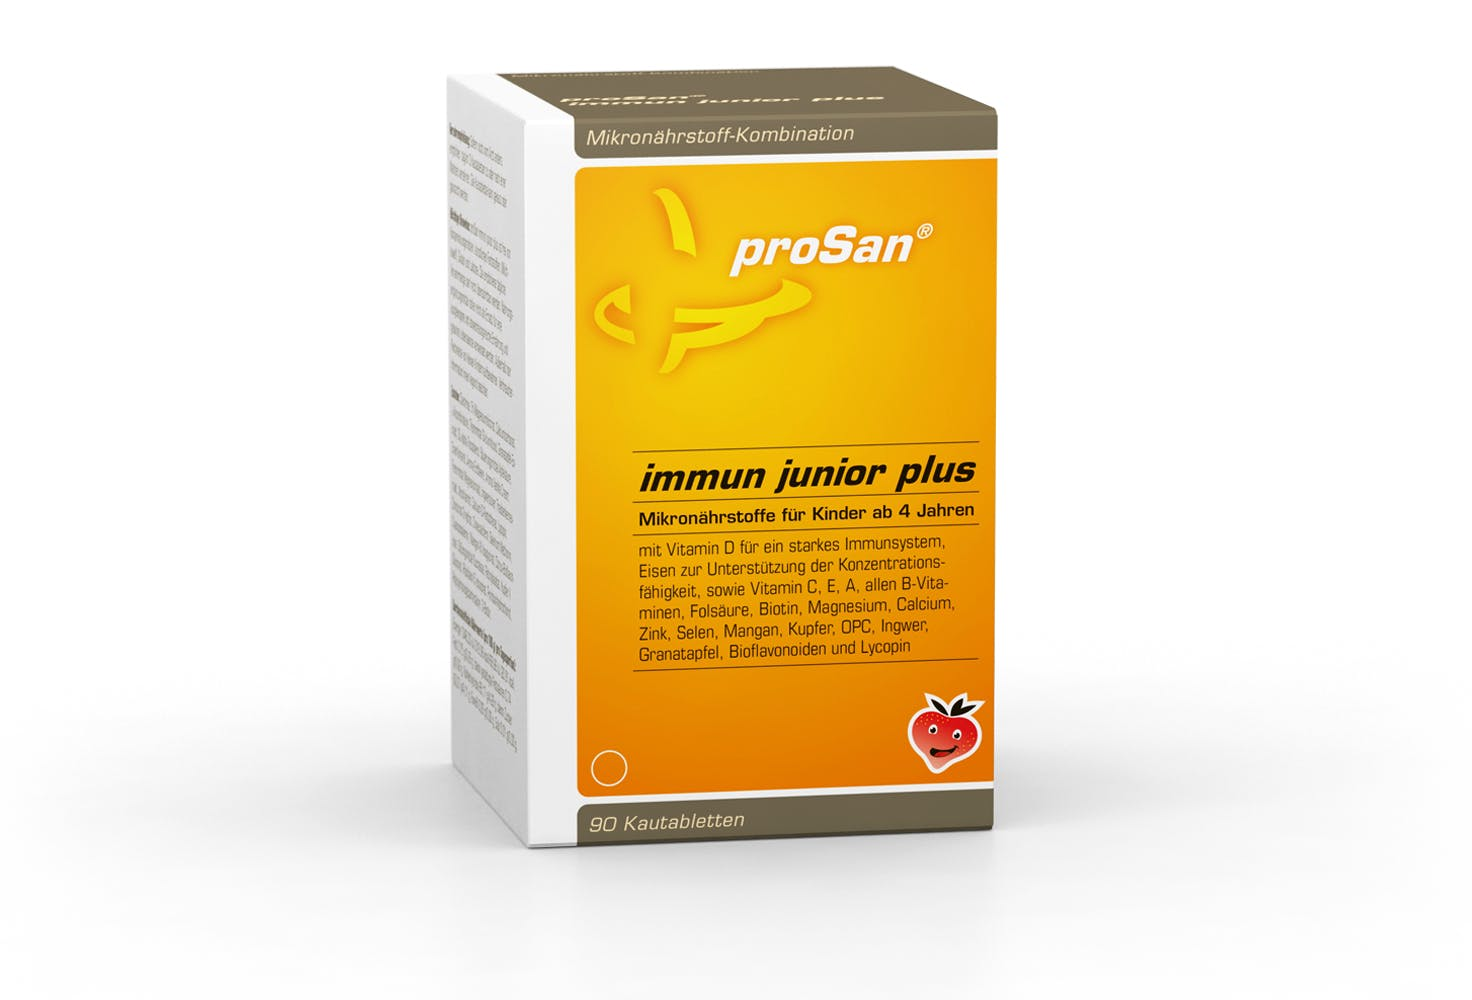 proSan immun junior plus